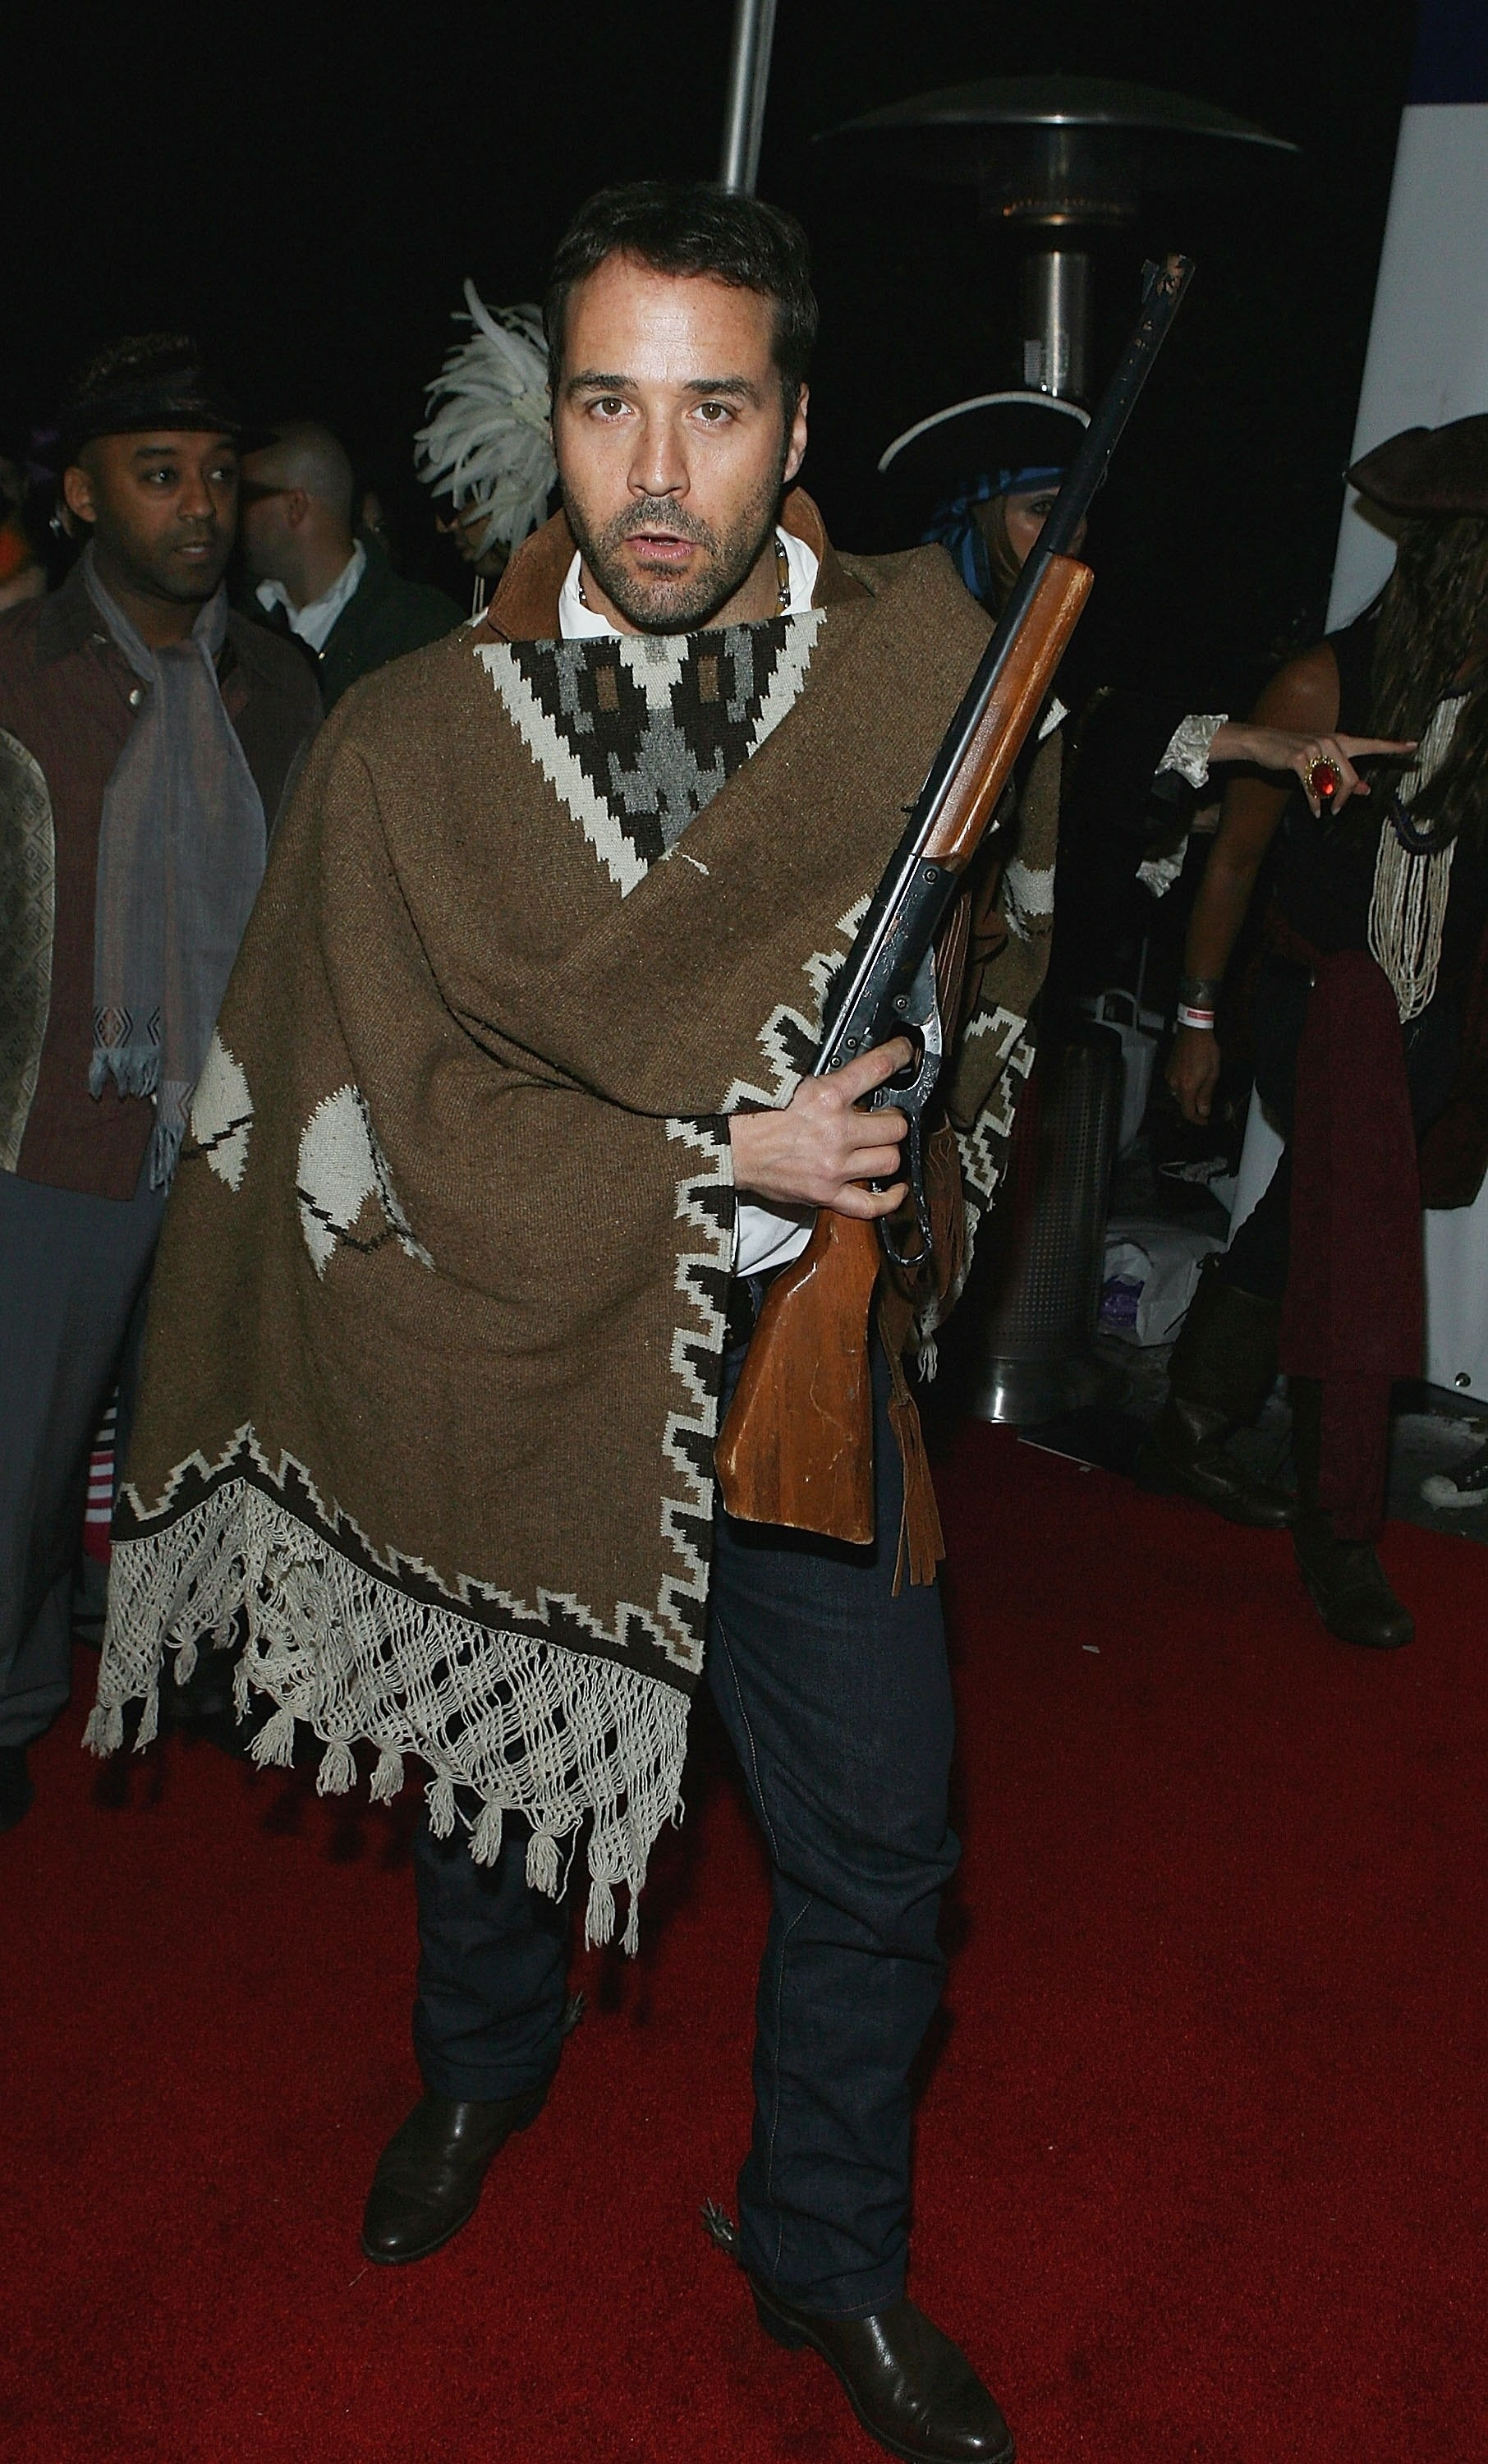 Man dressed like Tuco from The Good, The Bad, The Ugly (poncho and western boots).